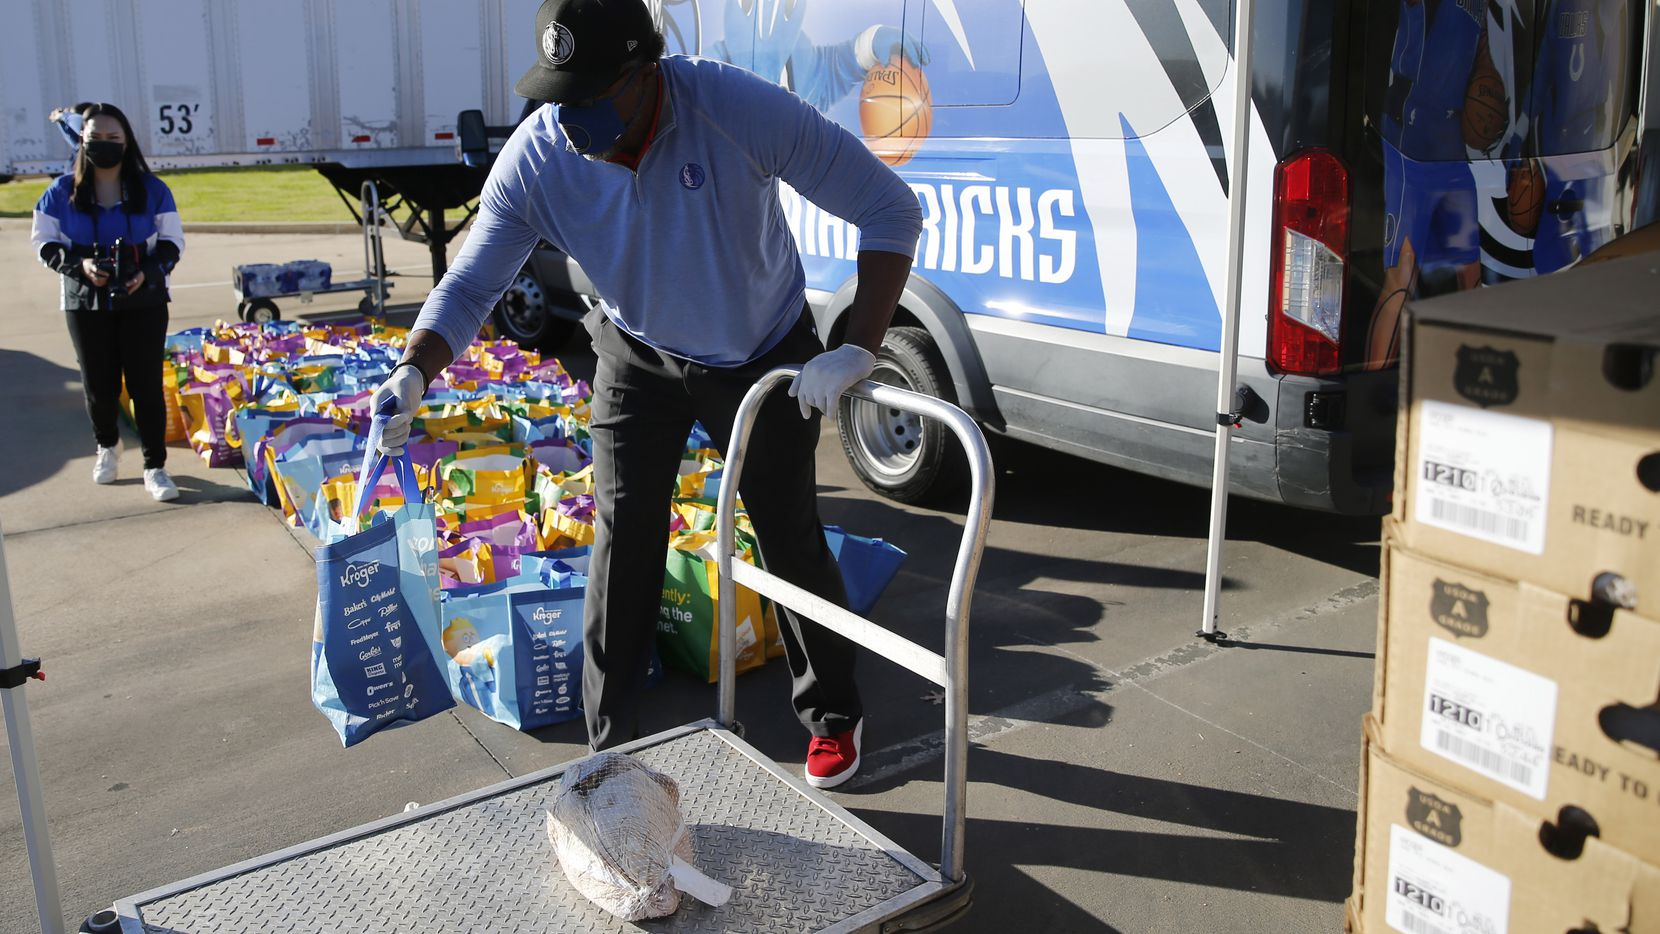 Former Dallas Mavericks player Cedric Ceballos prepares to give out food during a drive-through food distribution at Buckner Humanitarian Aid Center on Tuesday, November 17, 2020 in Dallas. The Dallas Mavericks in partnership with Kroger provided 200 families with turkey, stuffing and more for the Thanksgiving holiday.